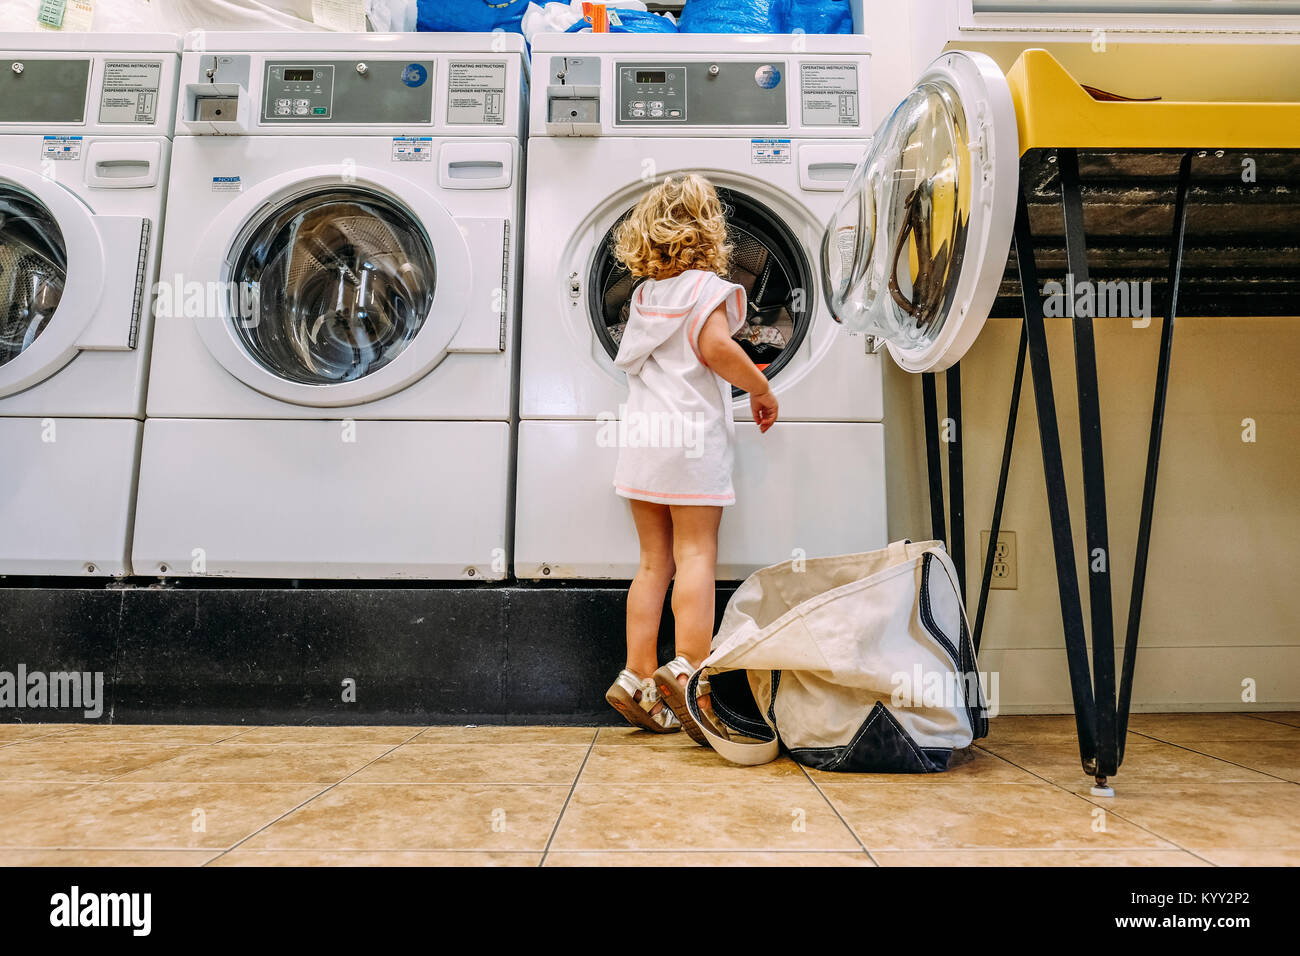 Rear view of girl putting clothing in washing machine at Laundromat - Stock Image